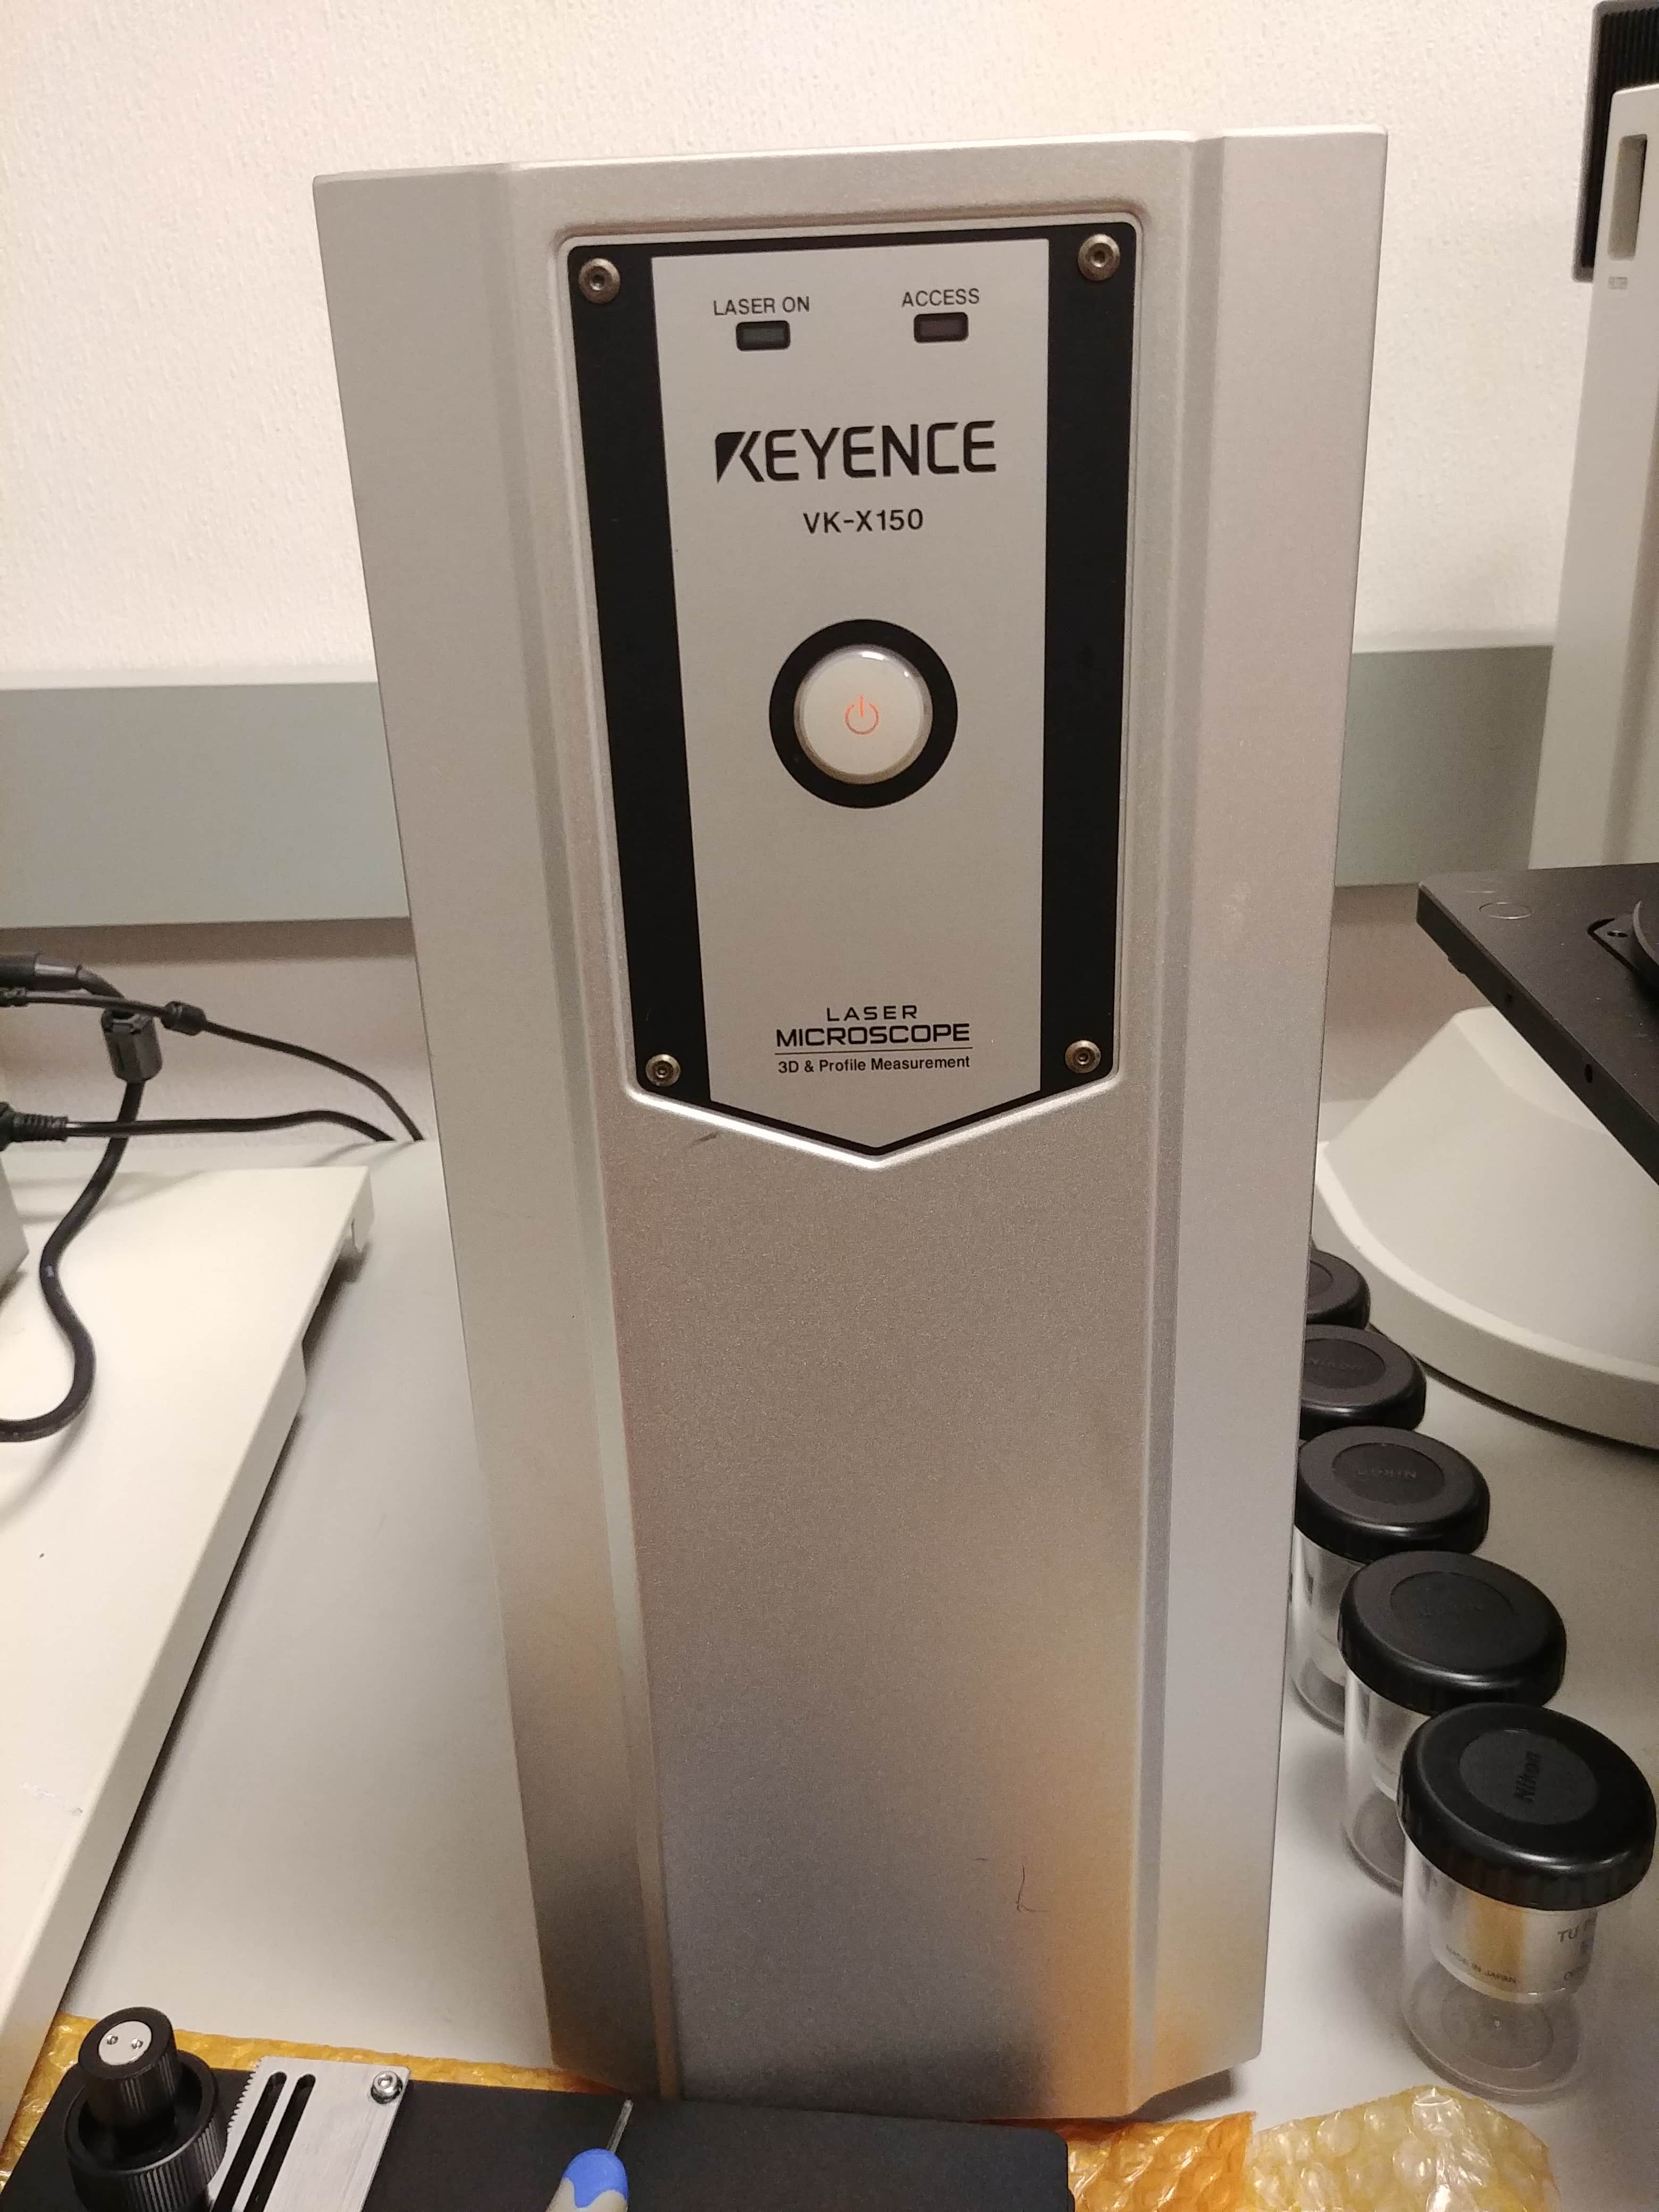 Keyence 3D laser scanning confocal microscope VK-X100, X150